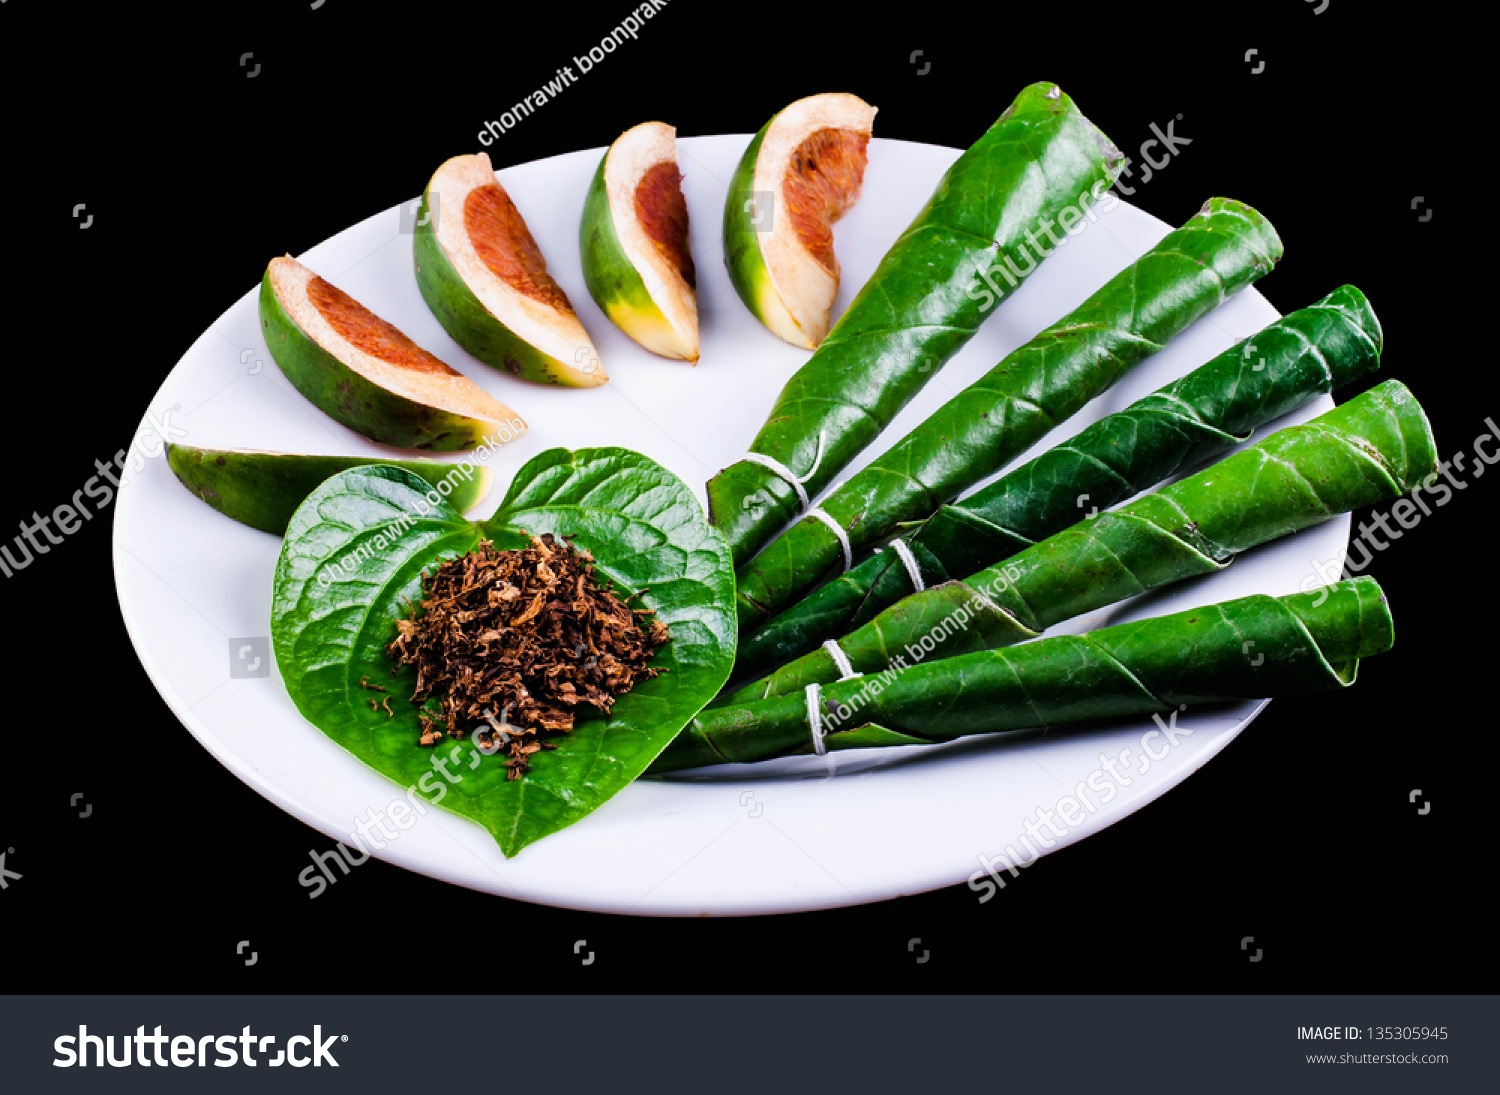 Image result for areca nut and betel leaf